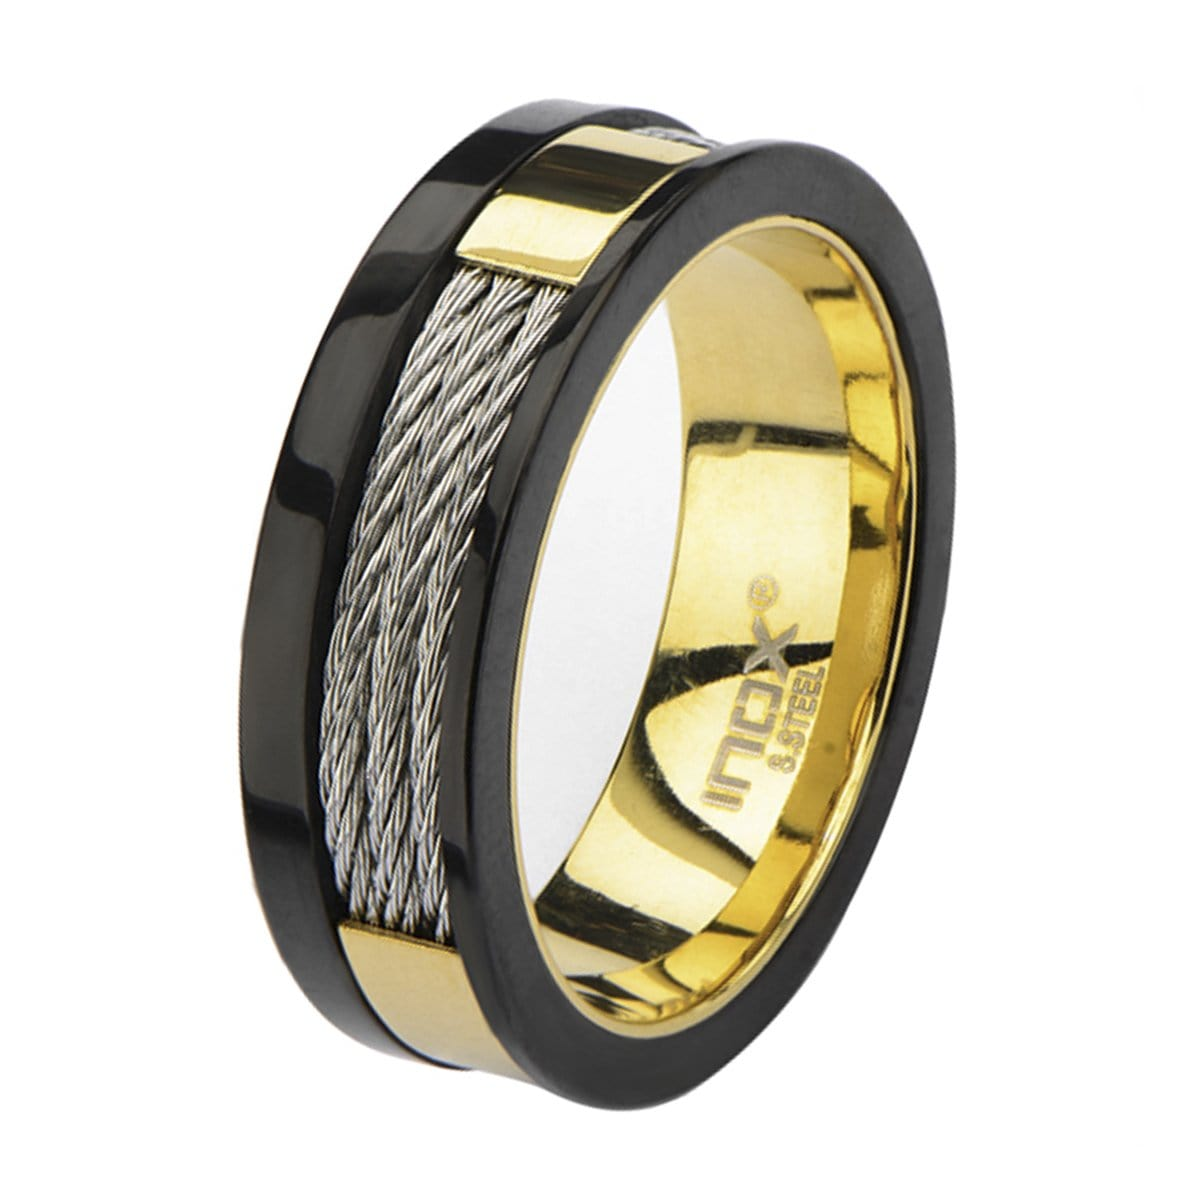 Gold, Black & Silver Stainless Steel Partial Exposed Cable Ring - Inox Jewelry India